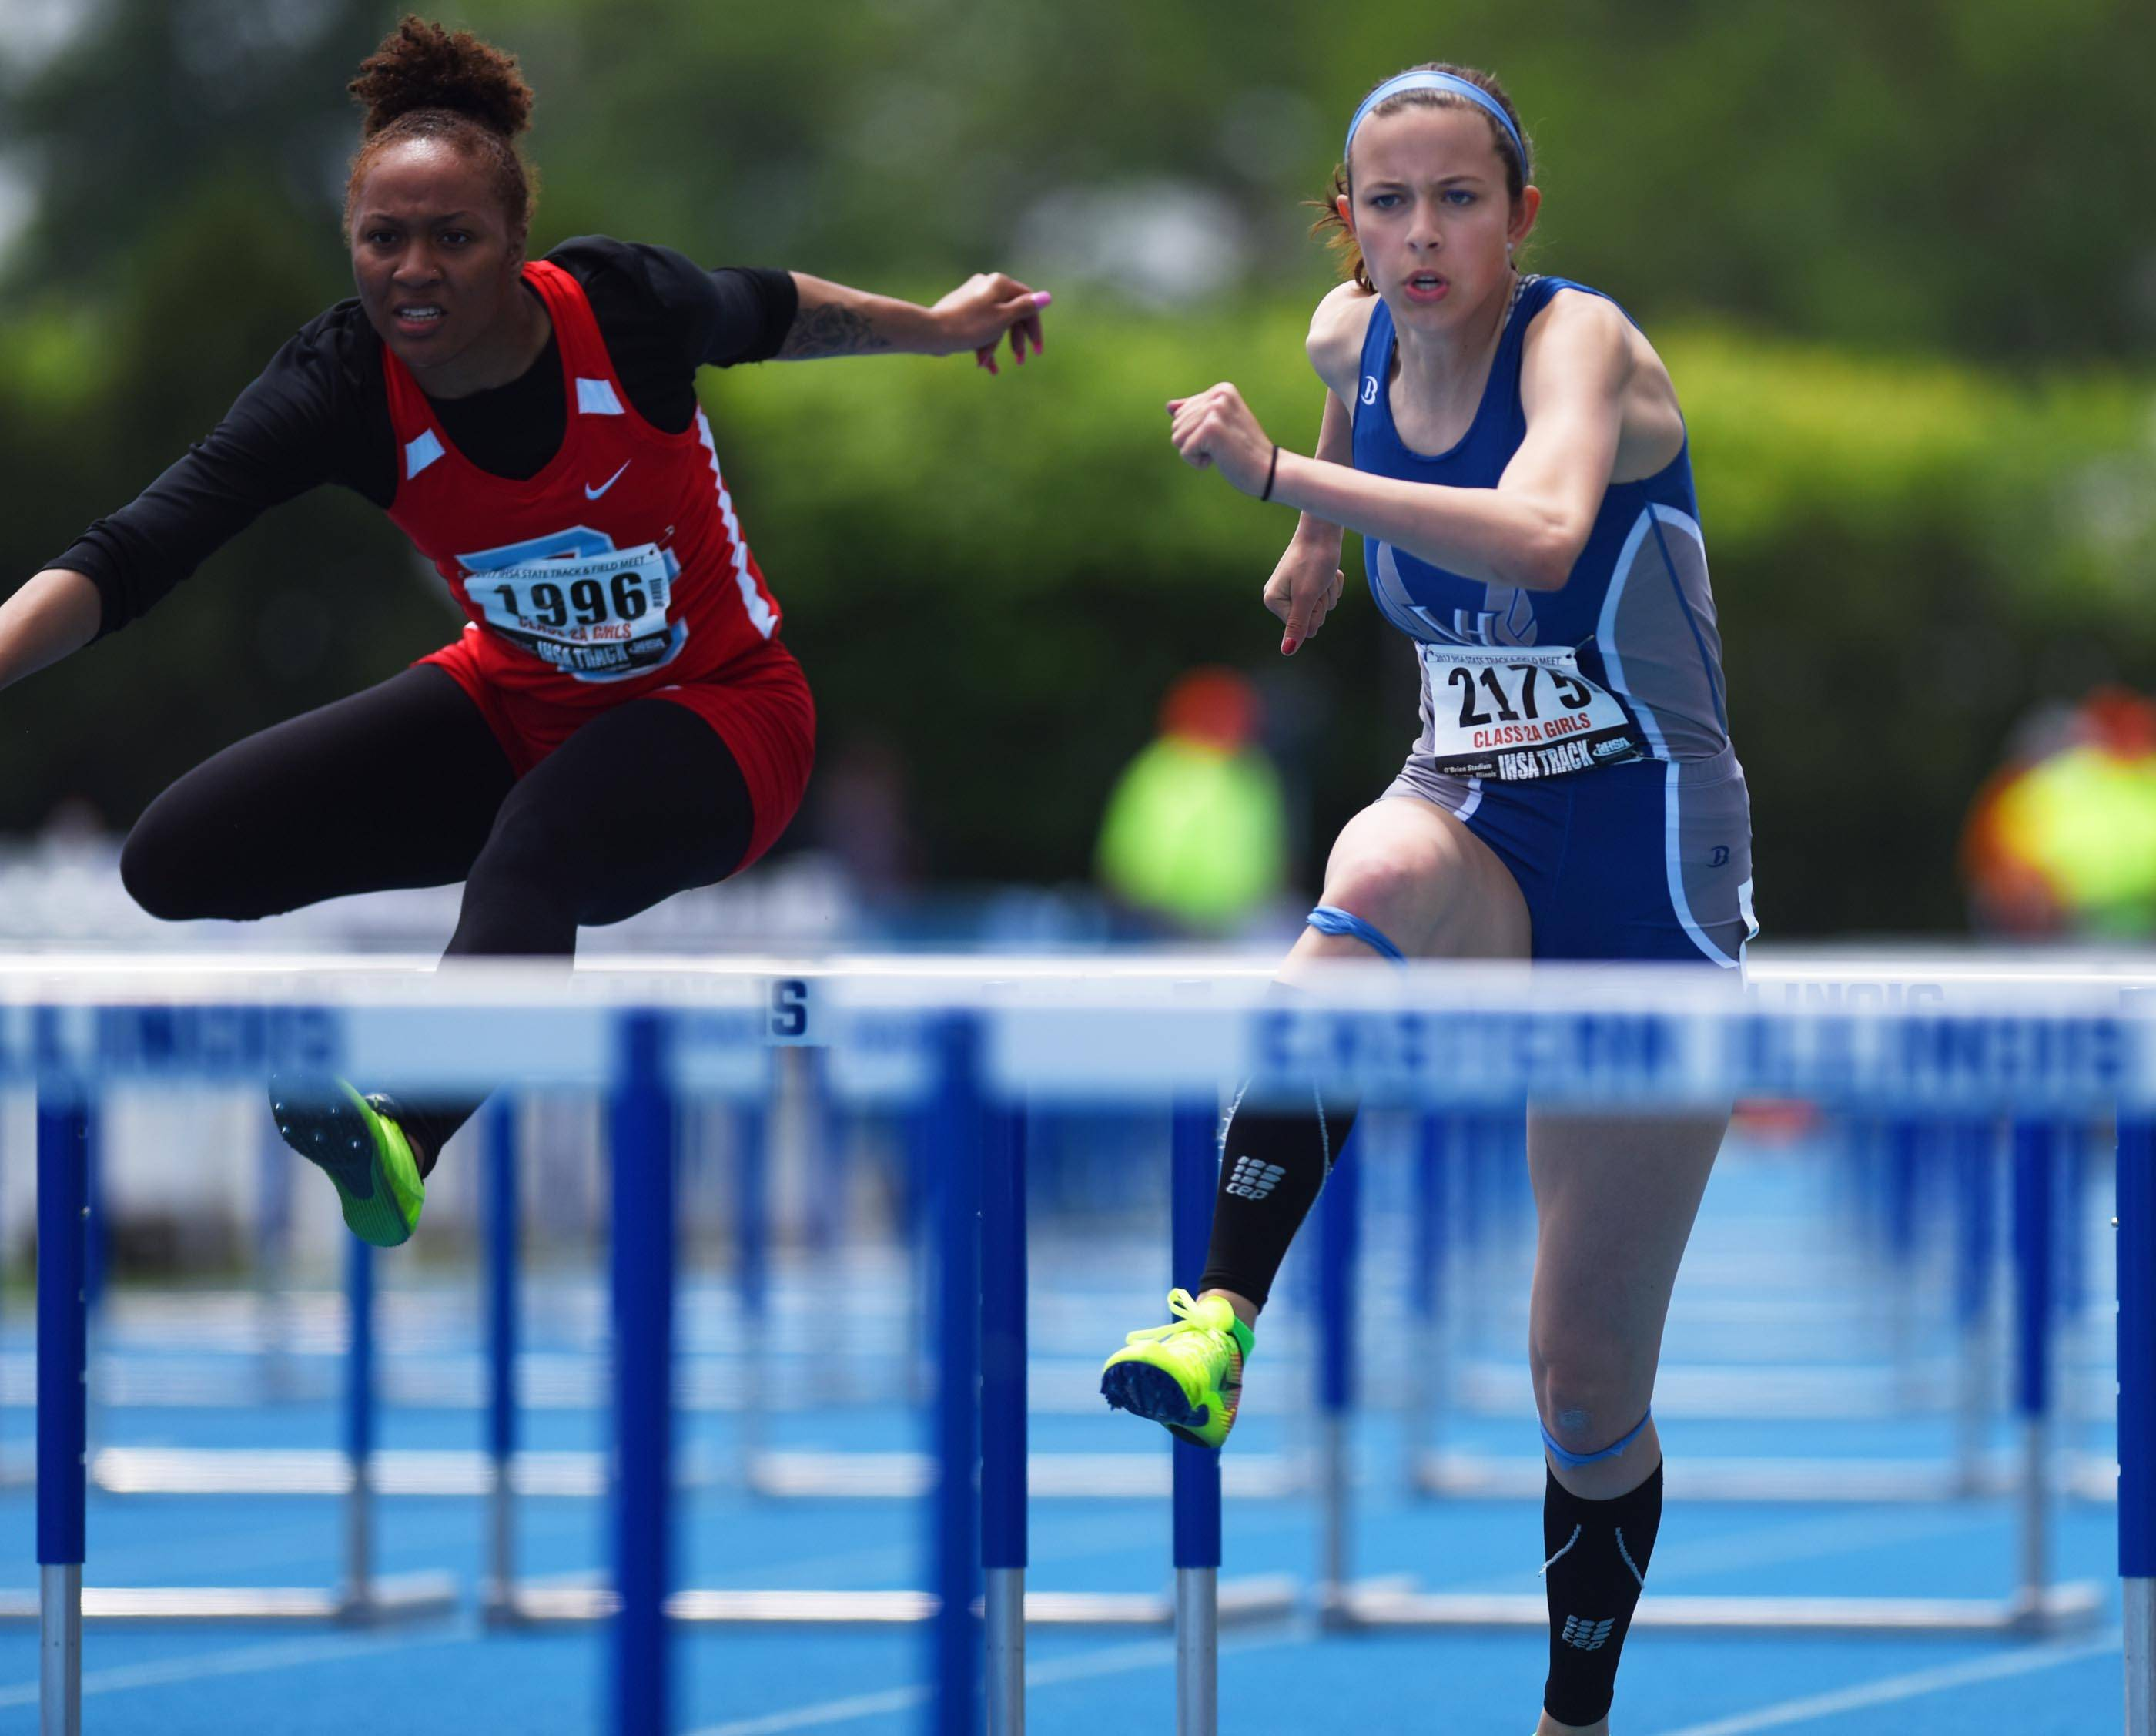 Vernon Hills' Jordyn Bunning, right, competes in the Class 2A 100-meter high hurdles during the girls track and field state meet prelims Friday at Eastern Illinois University in Charleston.